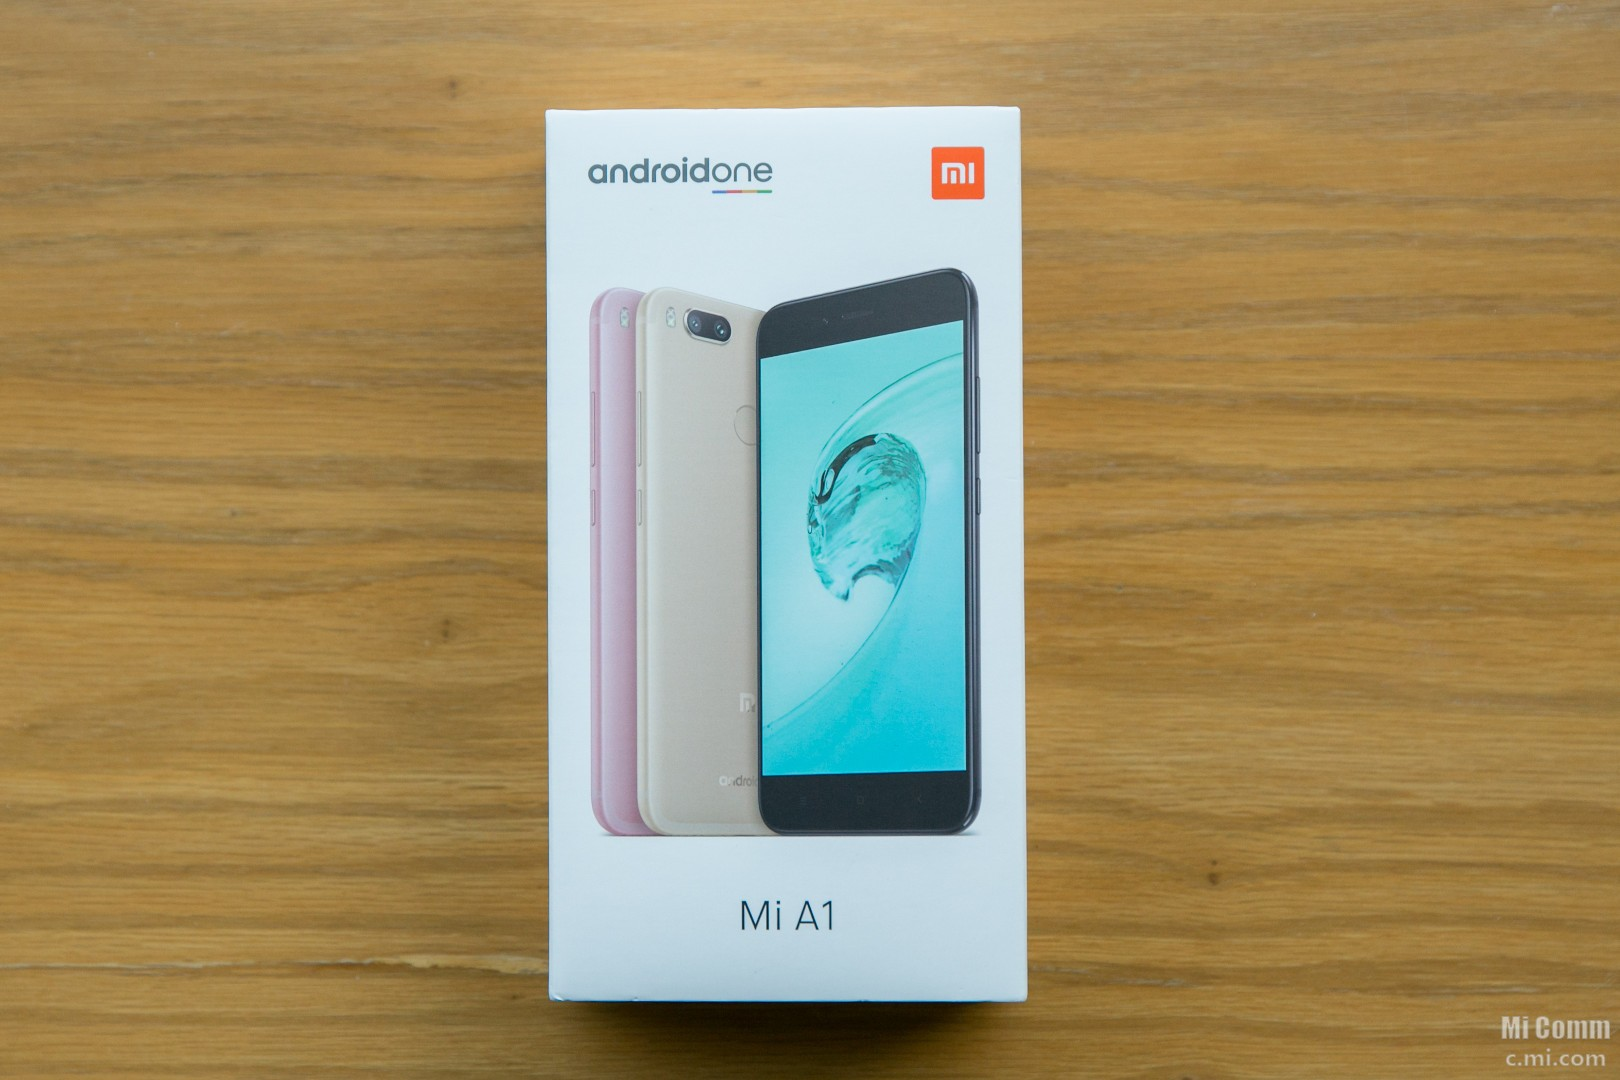 Unboxing and hands on pictures of mi a1 mi a1 mi community xiaomi